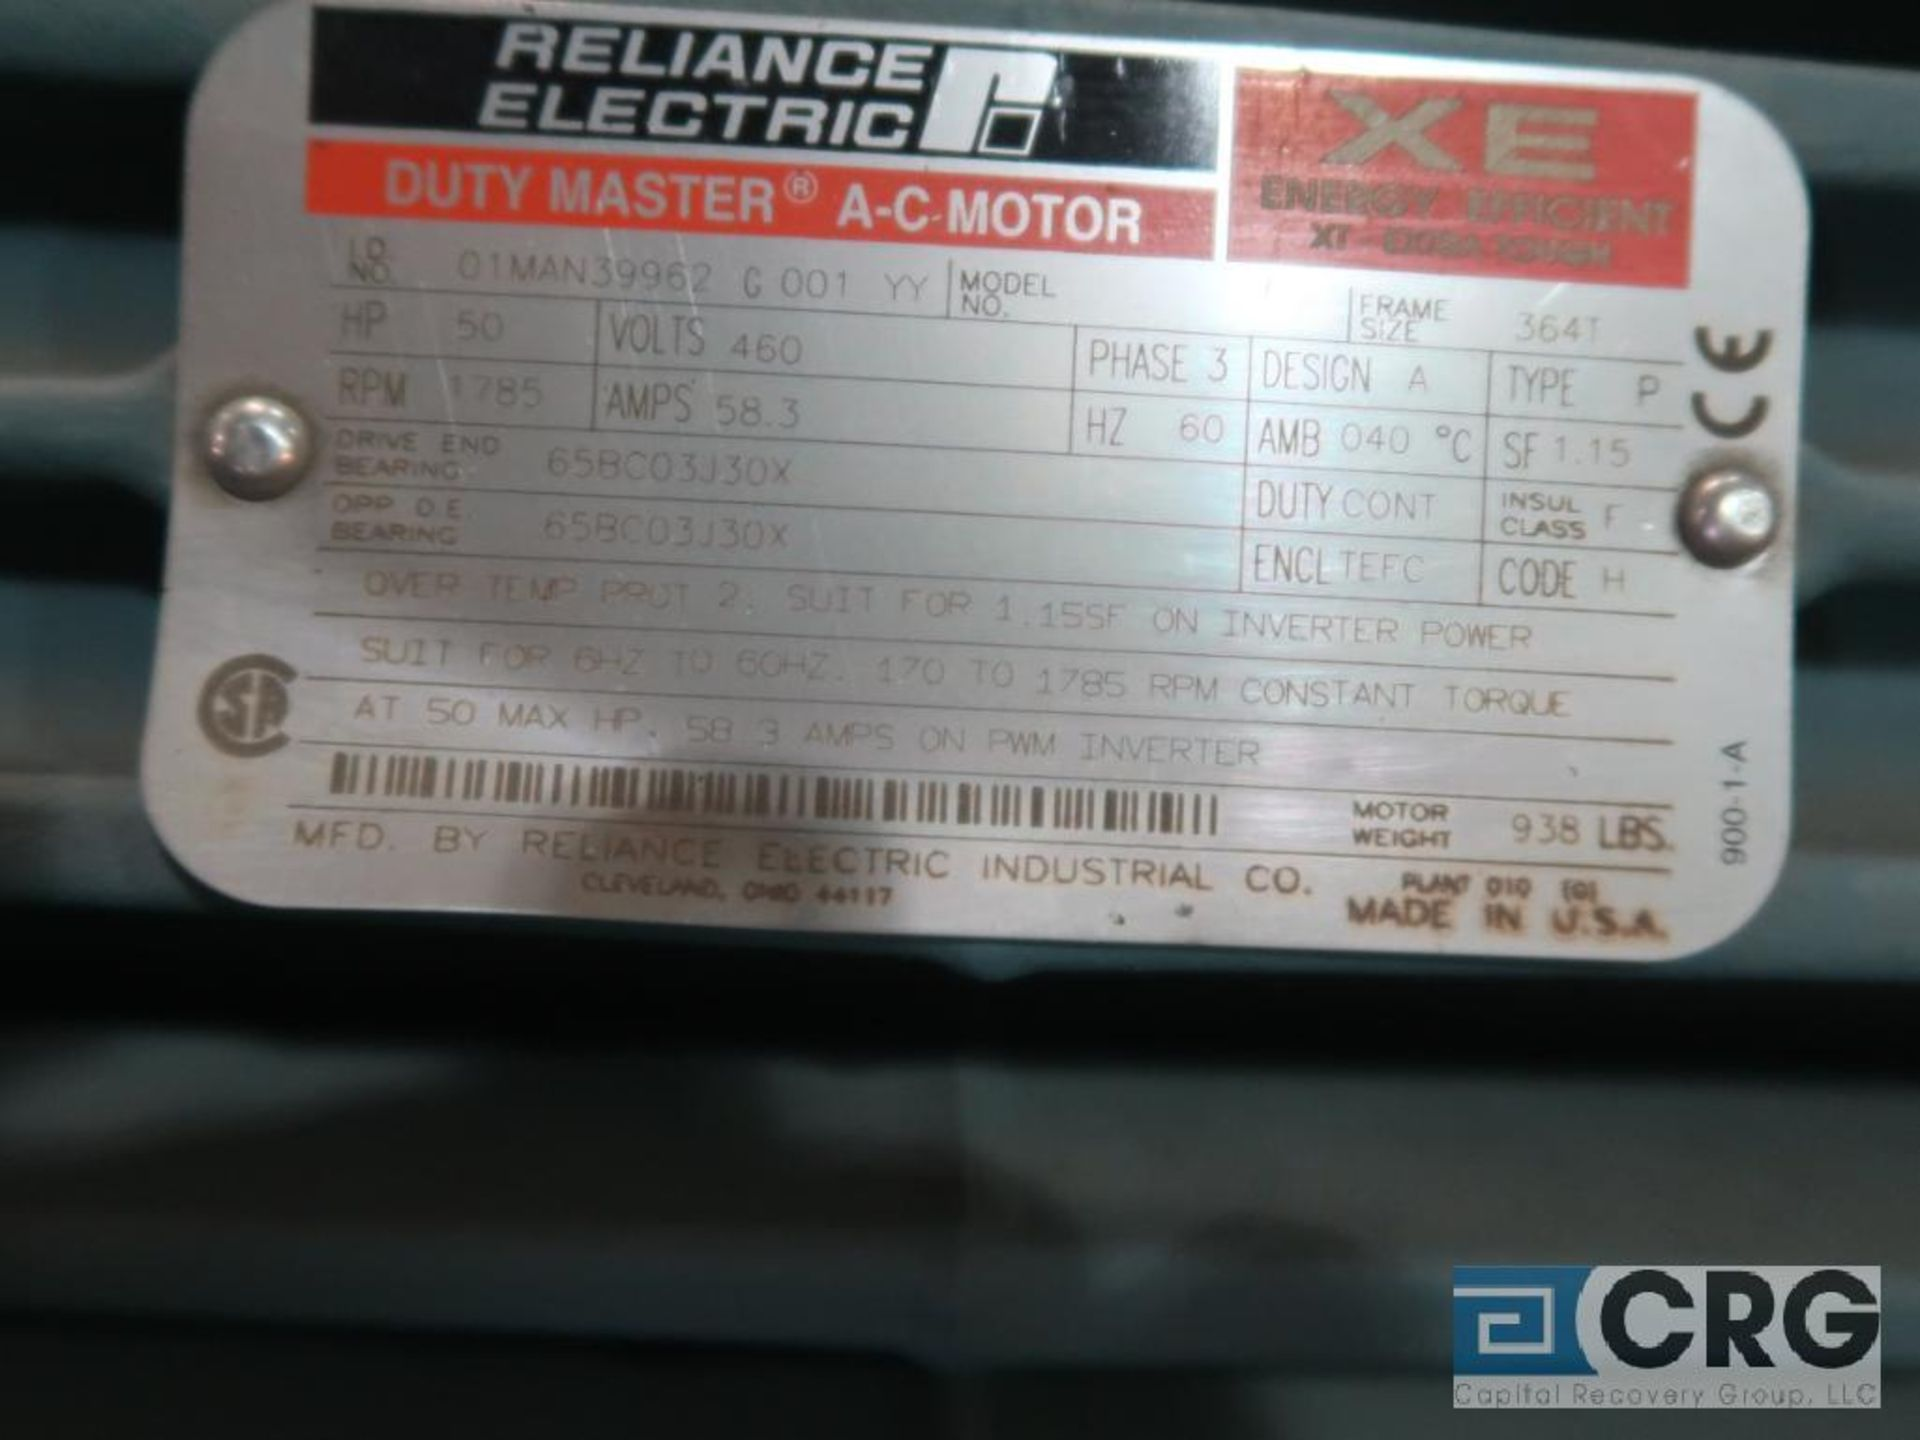 Reliance Electric Duty Master XE Extra Efficient A-C motor, 50 HP, 1,785 RPMs, 460 volt, 3 ph., 364T - Image 2 of 2